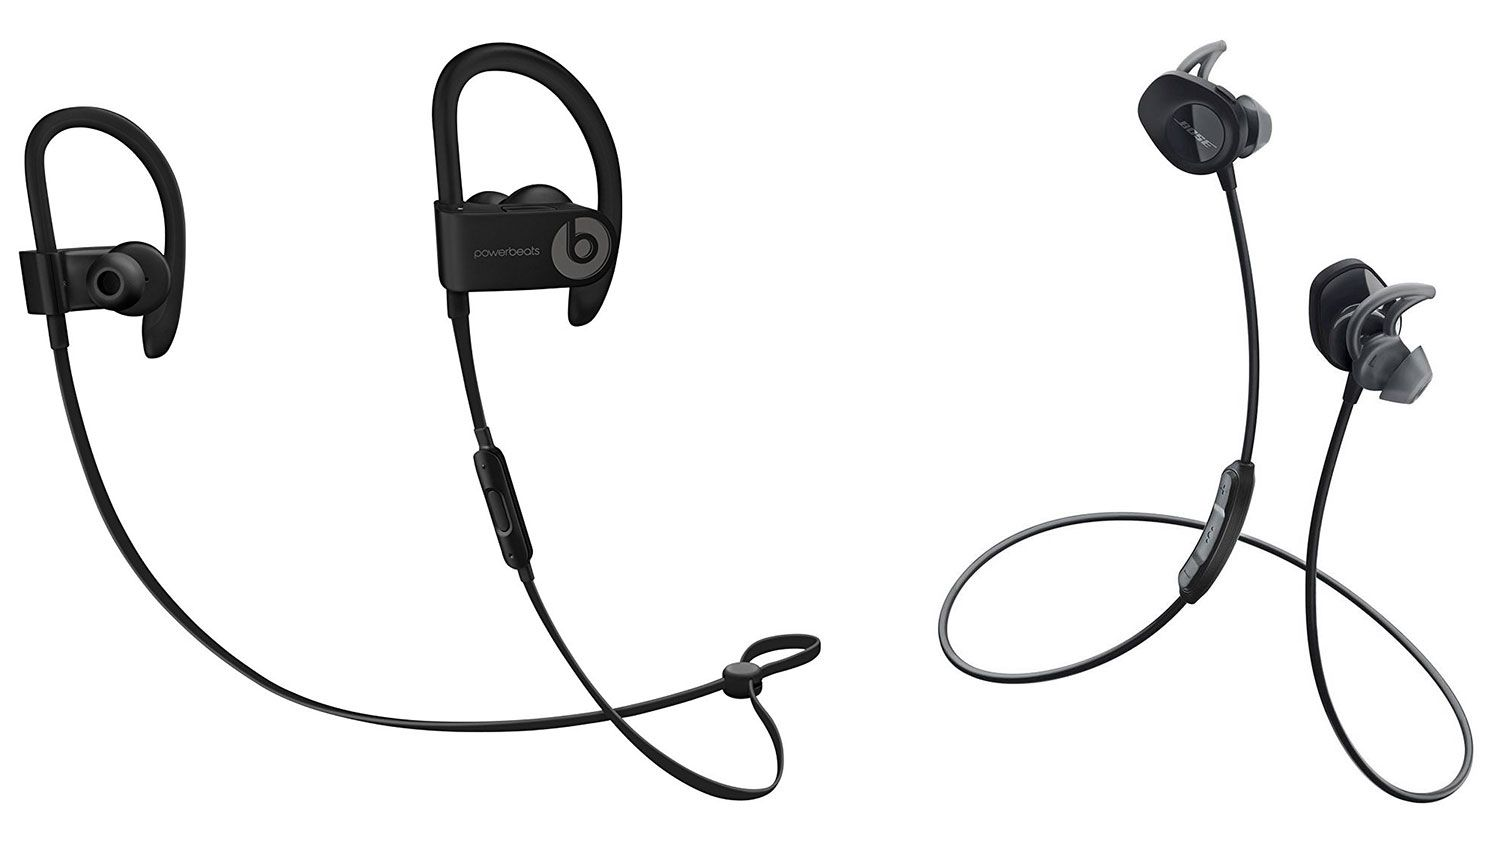 a00c535478a PowerBeats 3 vs. Bose SoundSport - Which Should You Buy? | Equipboard®